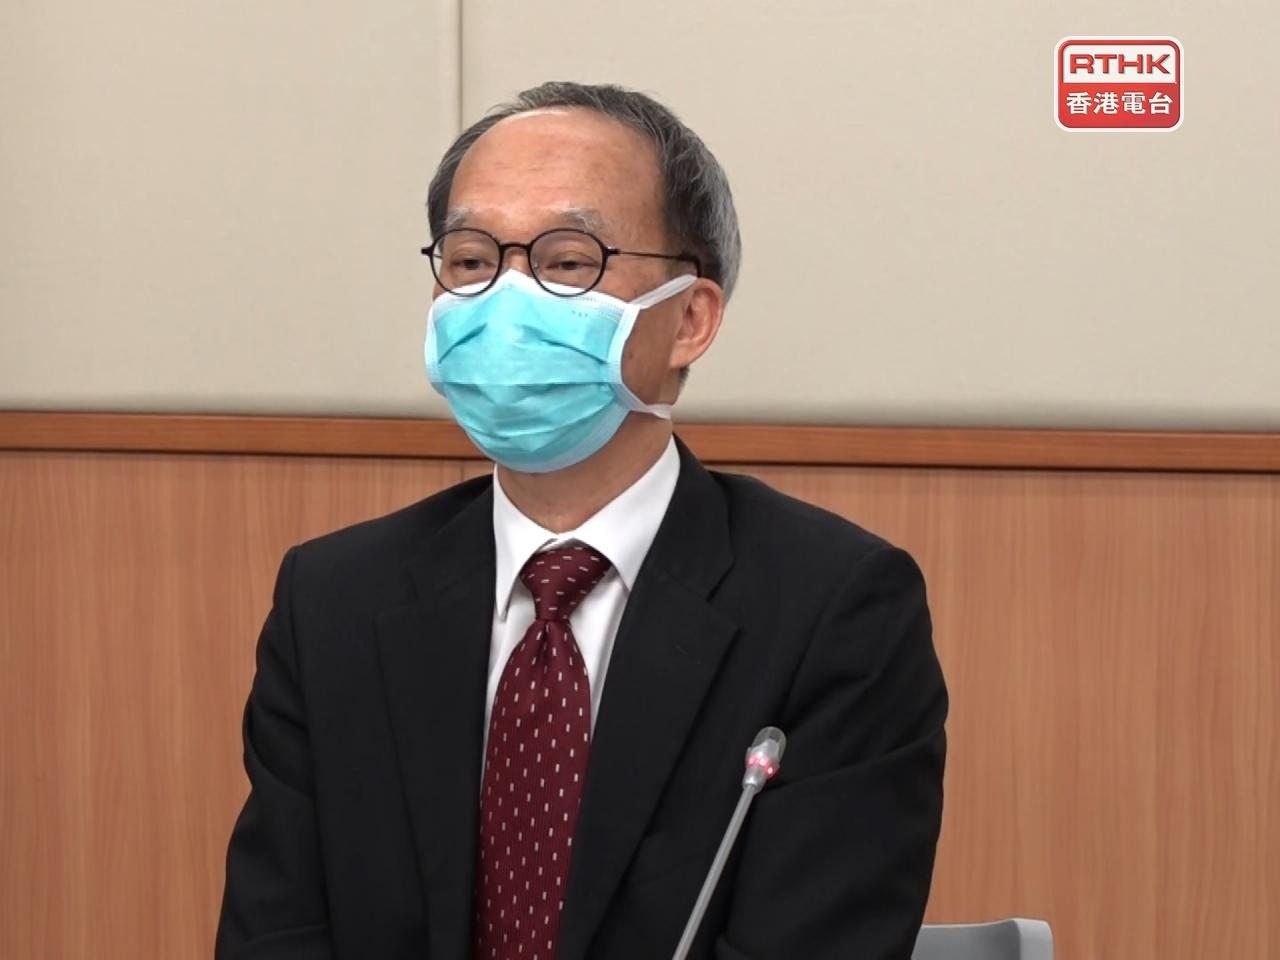 Government advisor Lau Yu-lung says the new advice strikes a balance between the vaccine's risks and benefits. File photo: RTHK